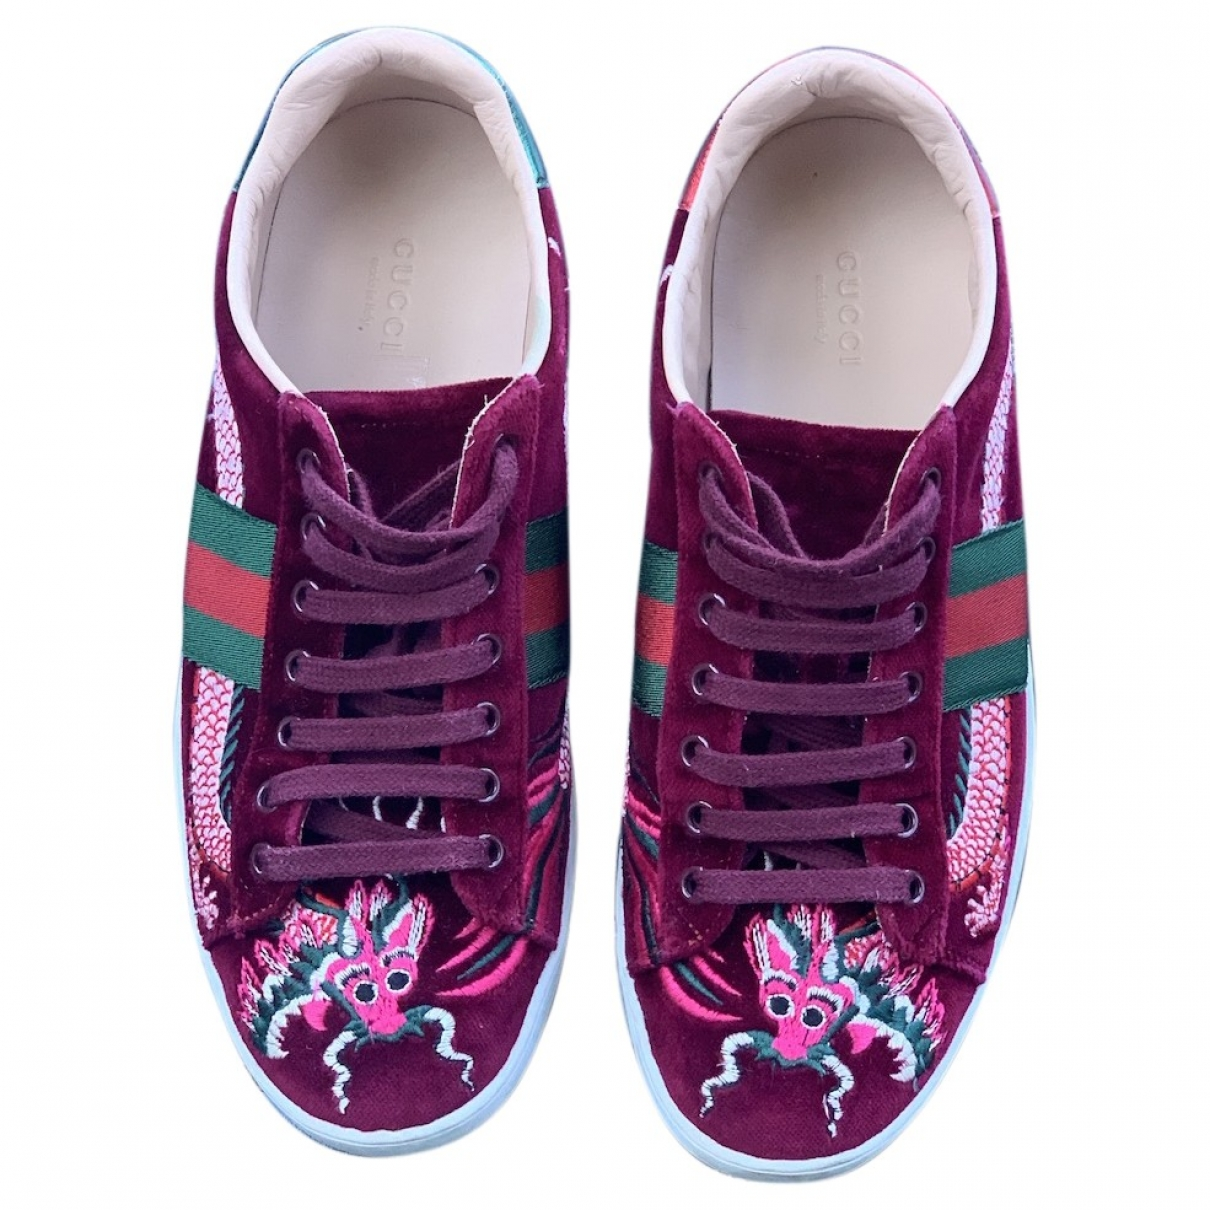 Gucci Ace Burgundy Velvet Trainers for Women 38.5 EU